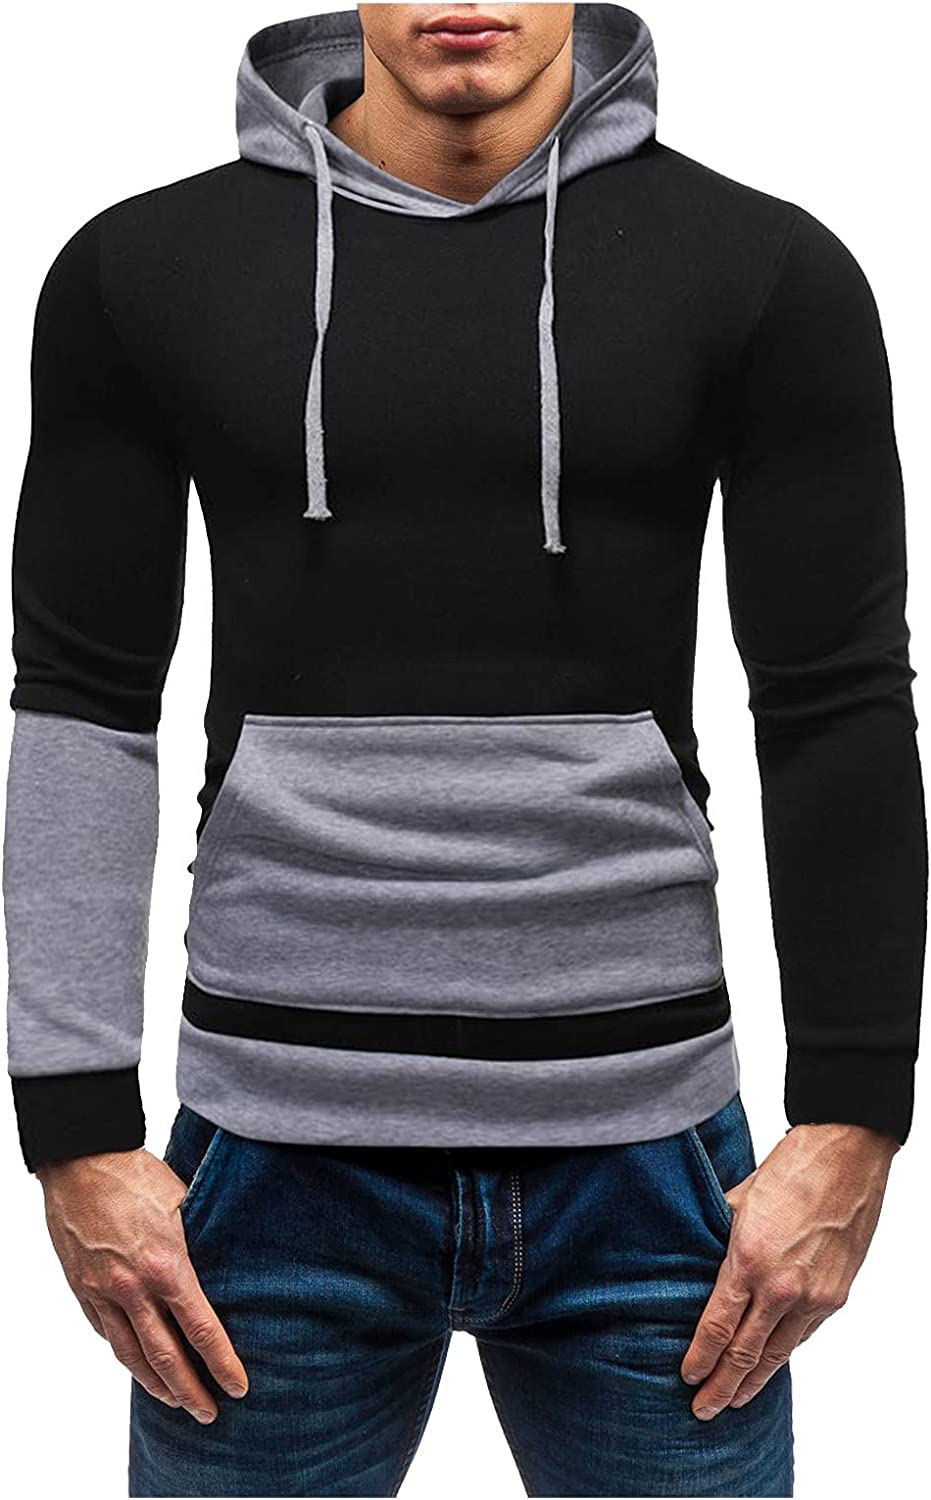 XXBR Patchwork Hoodies for Mens, Fall Color Block Stitching Hooded Sweatshirts Slim Fit Workout Sports Pullover Tops